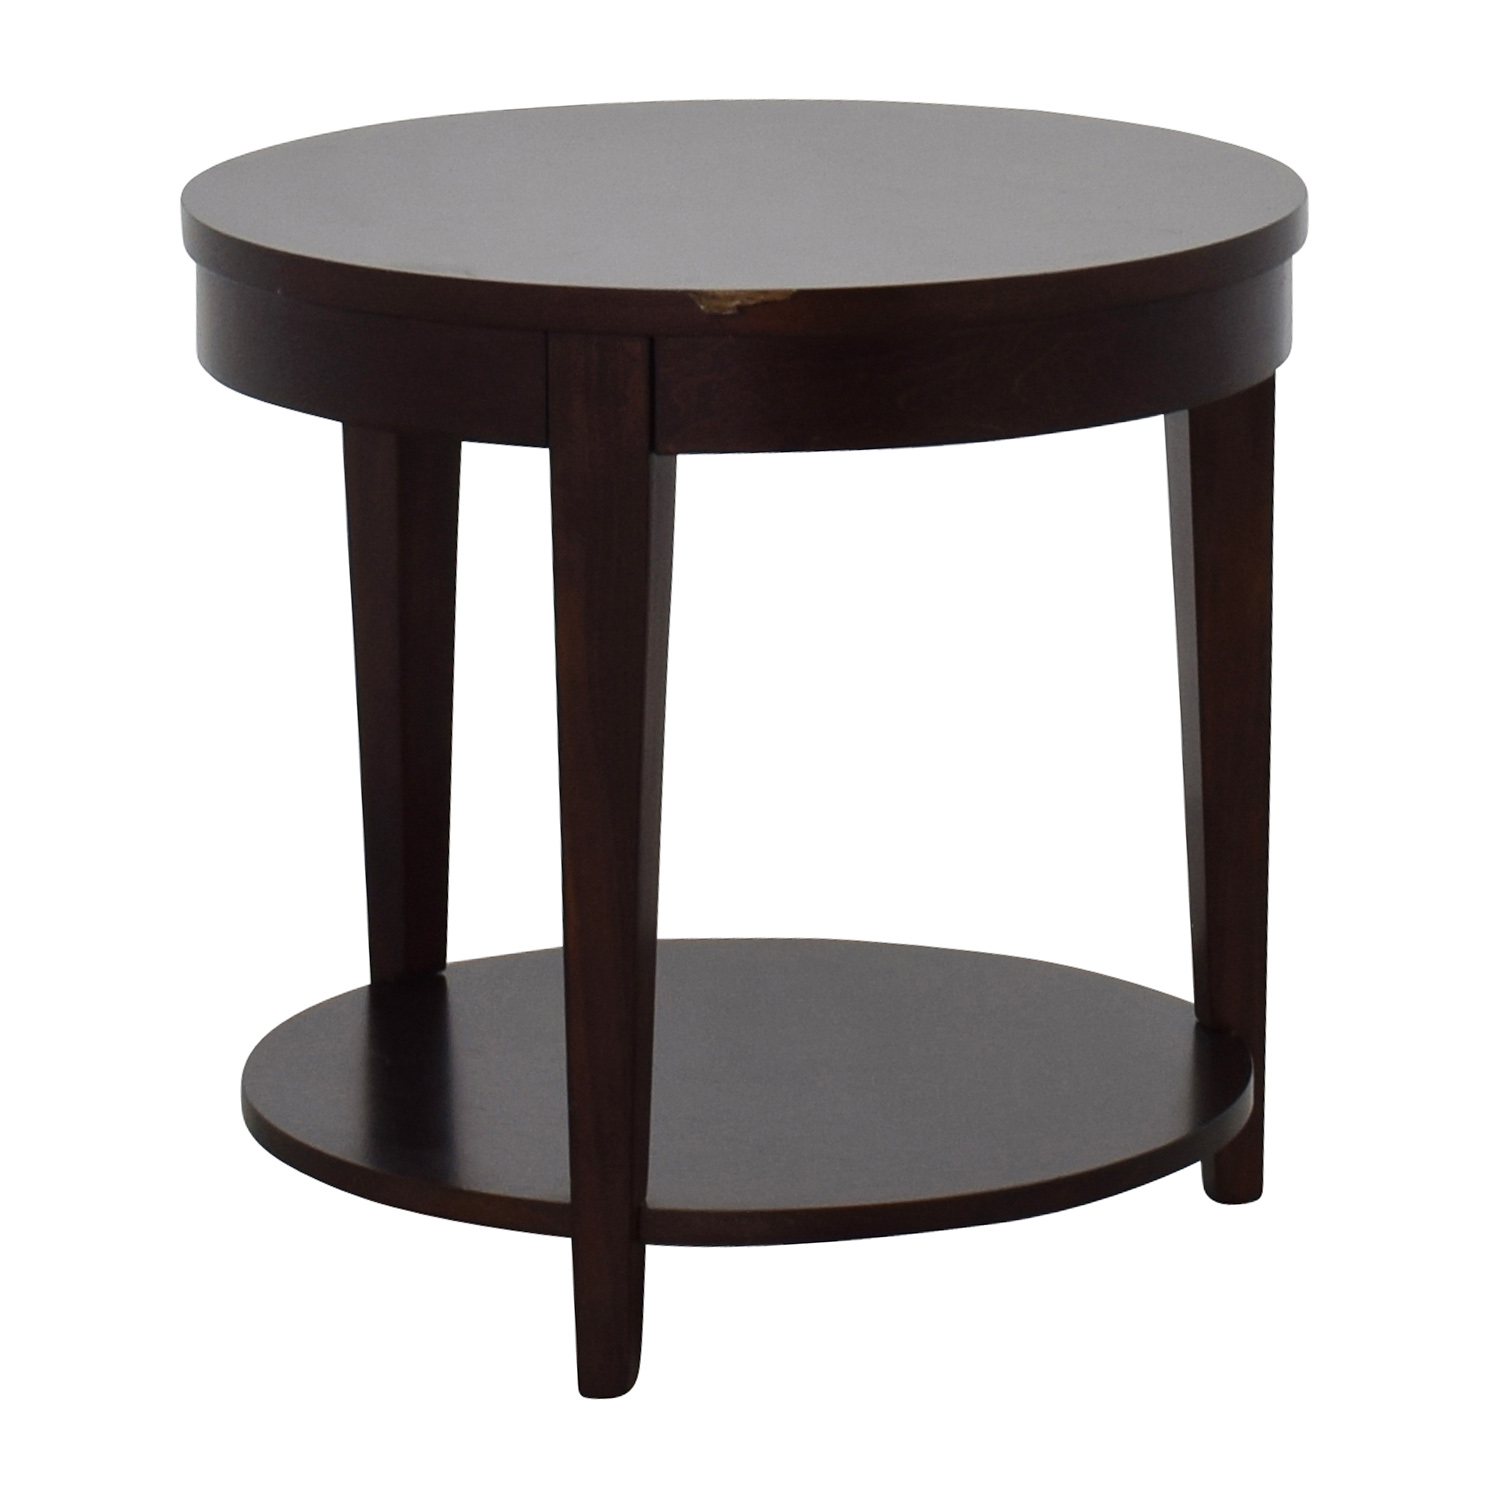 cheaper e7744 7c3bd 71% OFF - Macy's Macy's Round Night Stand / Tables